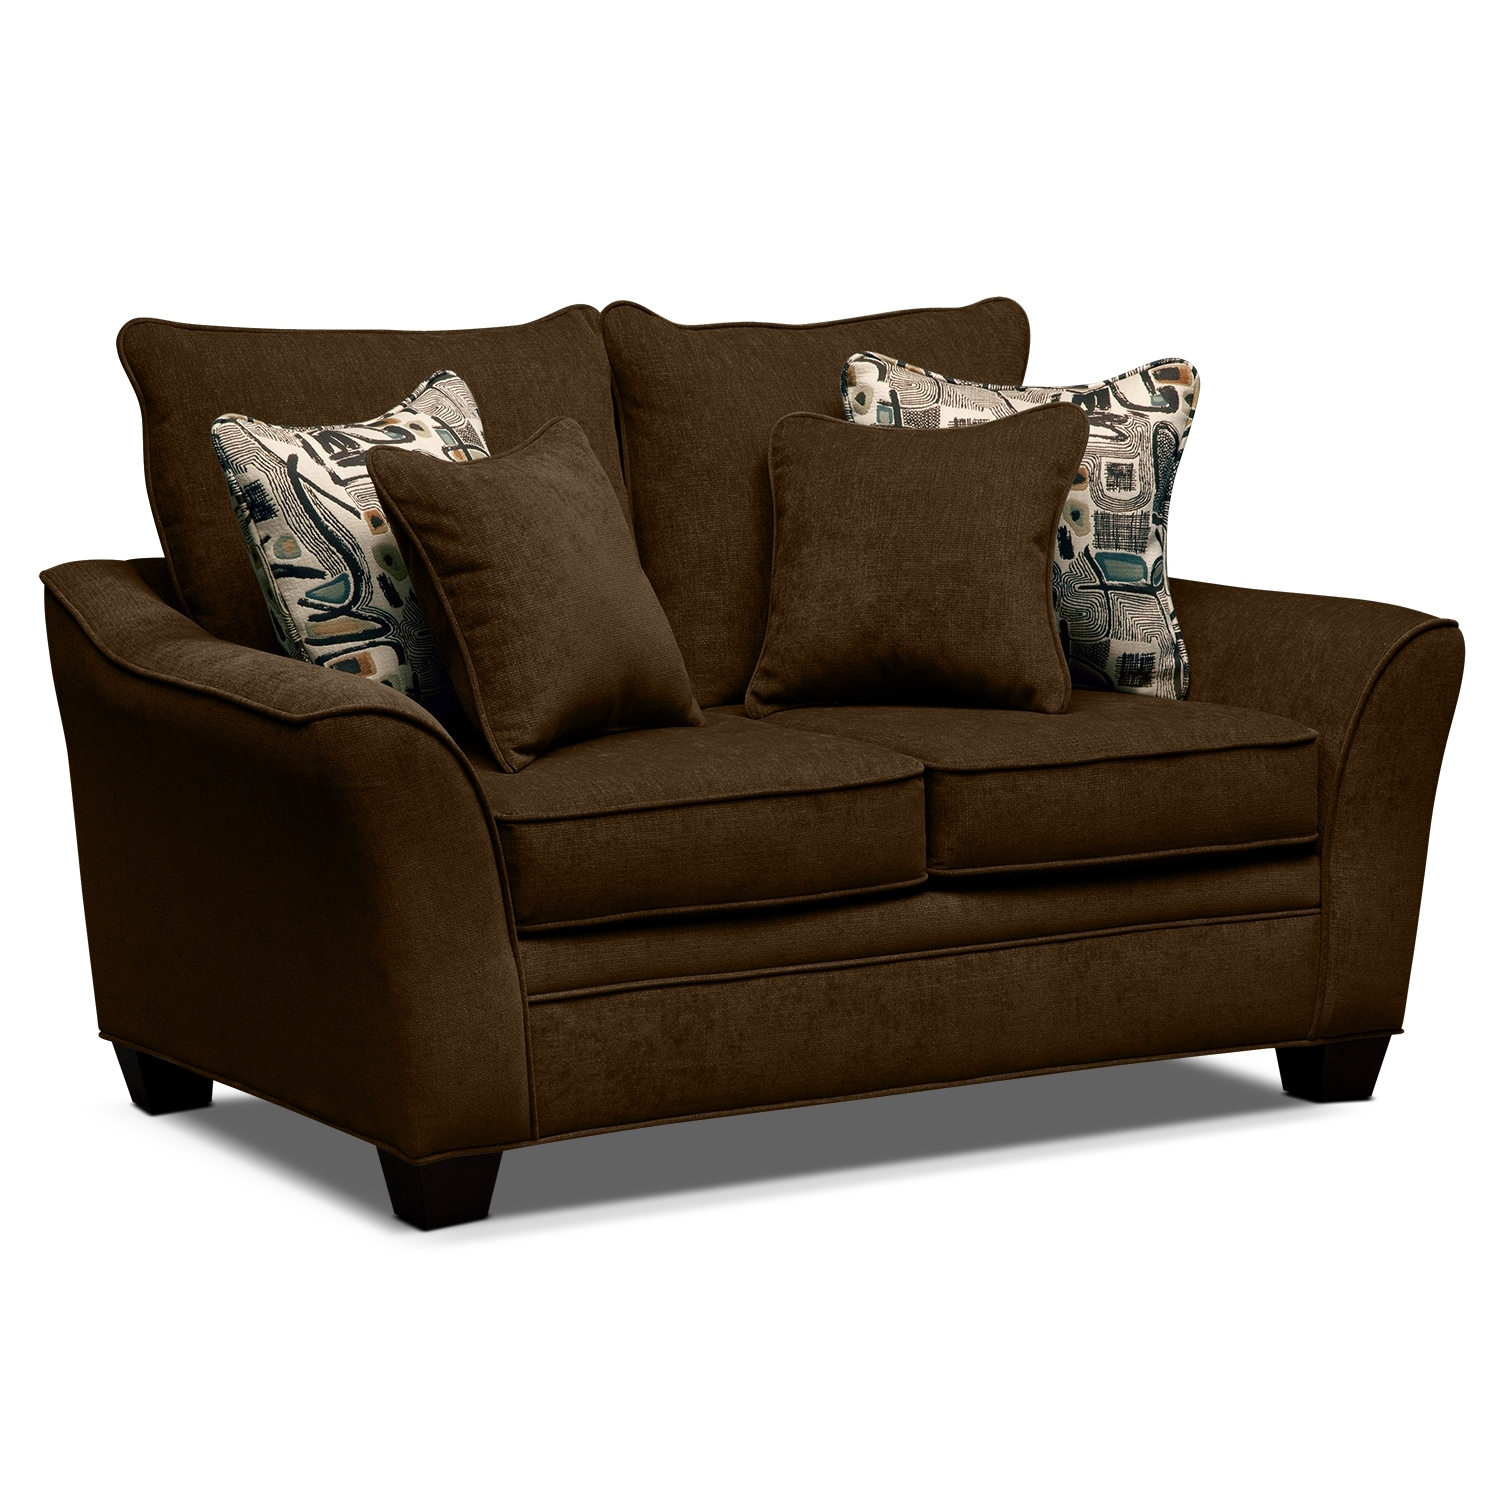 Living Room Furniture - Albion Chocolate Loveseat